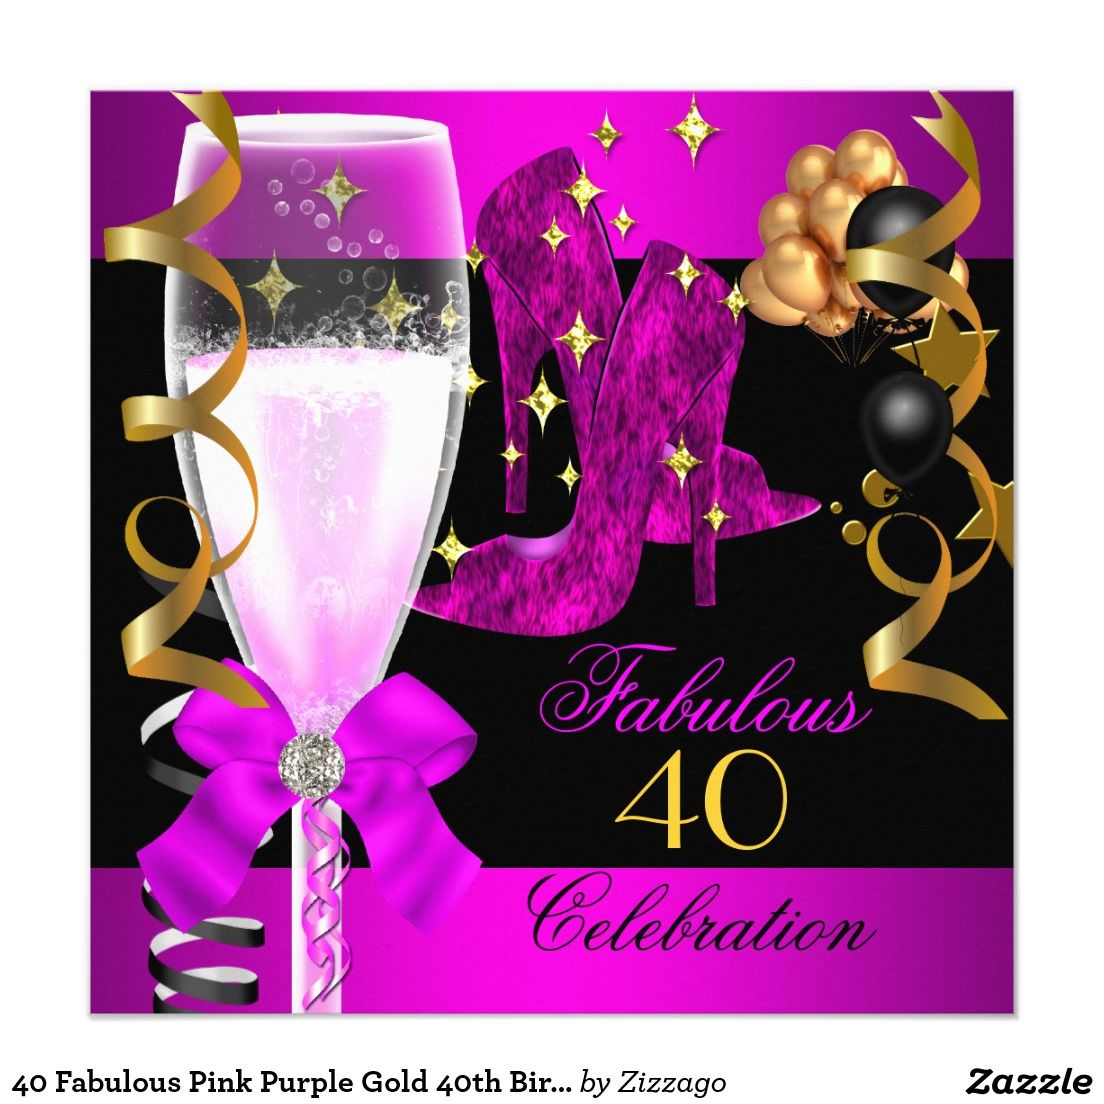 40 Fabulous Pink Purple Gold 40th Birthday Party Card | Purple gold ...